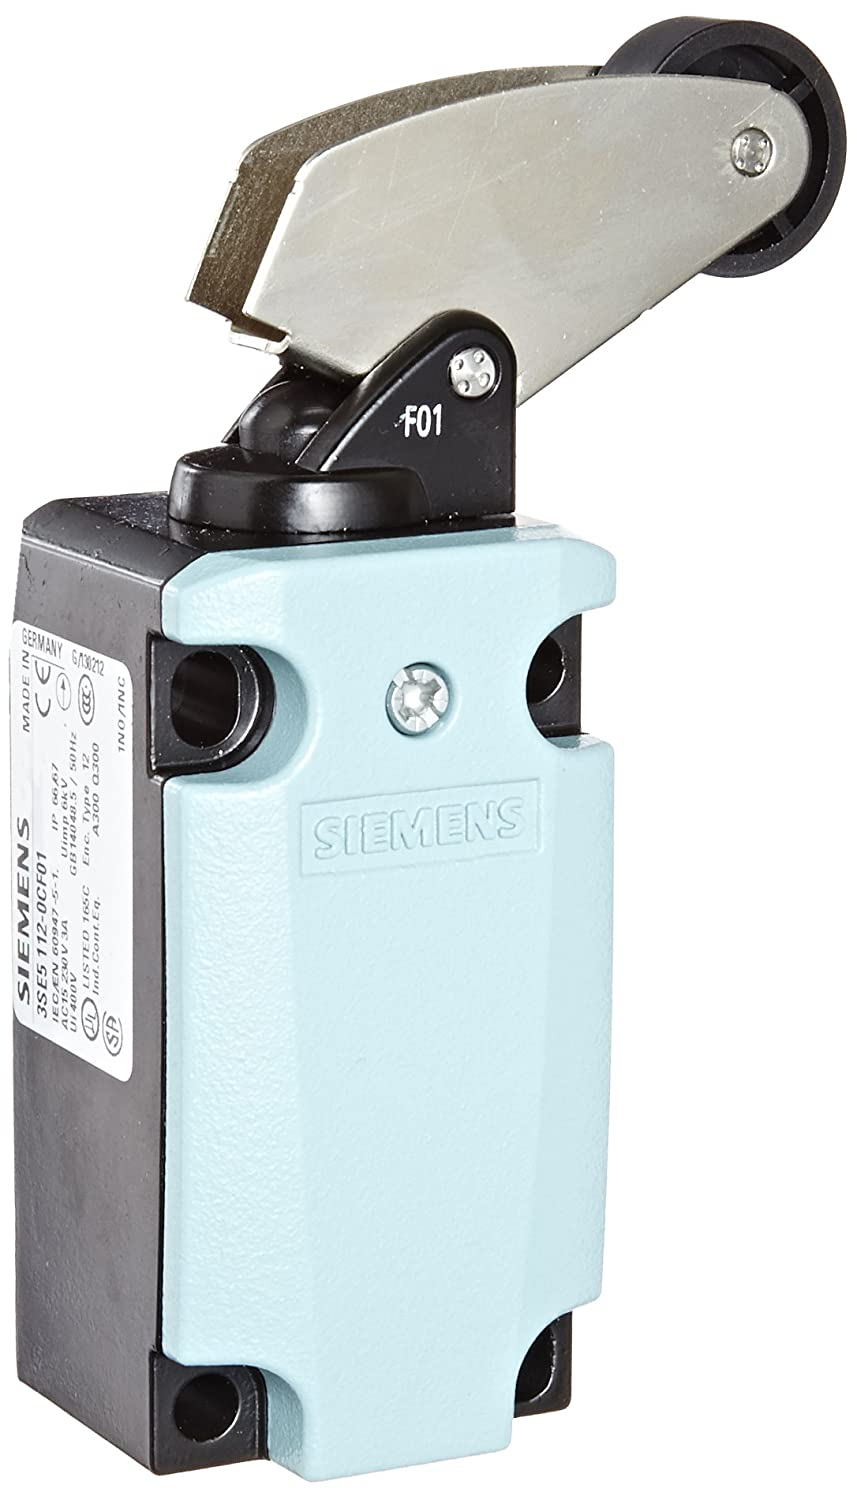 40mm Metal Enclosure 1 NC Contacts Siemens 3SE5 112-0CF01 International Limit Switch Complete Unit 22mm Plastic Roller Angular Roller Lever Metal Lever Snap Action Contacts 1 NO